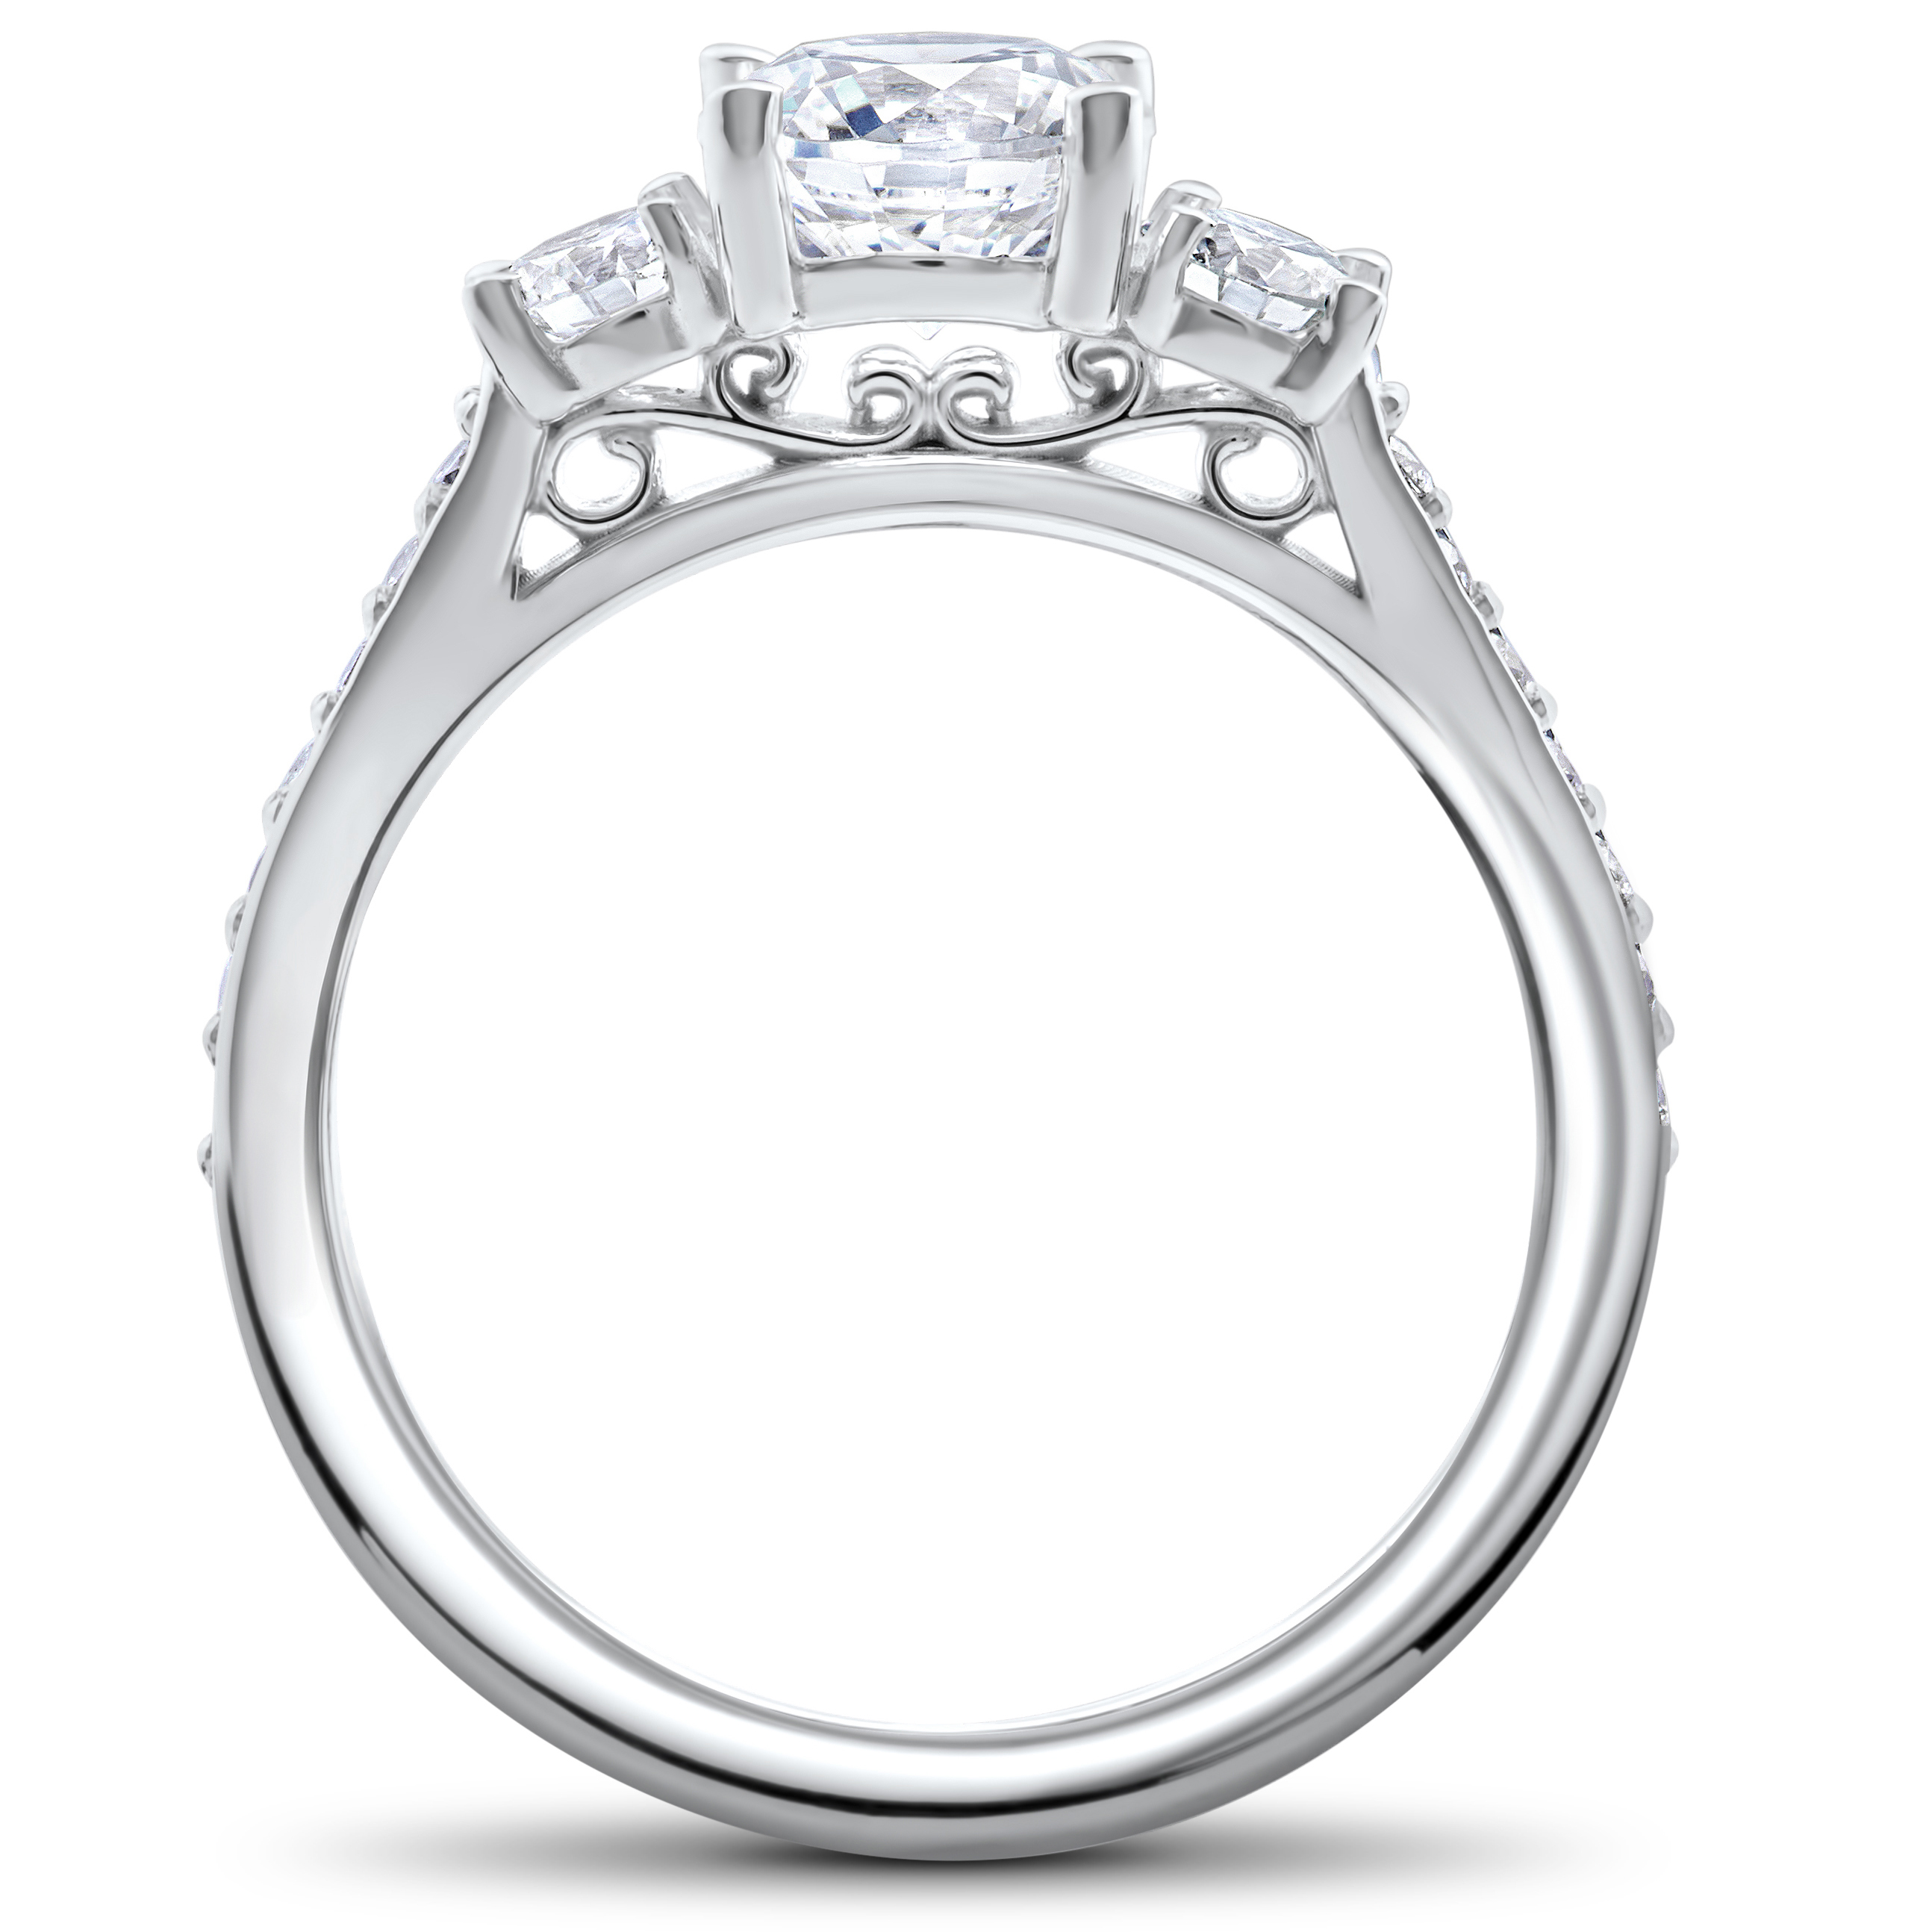 size only cut bands setting full halo of tacori wedding rings fresh settings engagement ring s princess jewellery unique sculpted ajax women